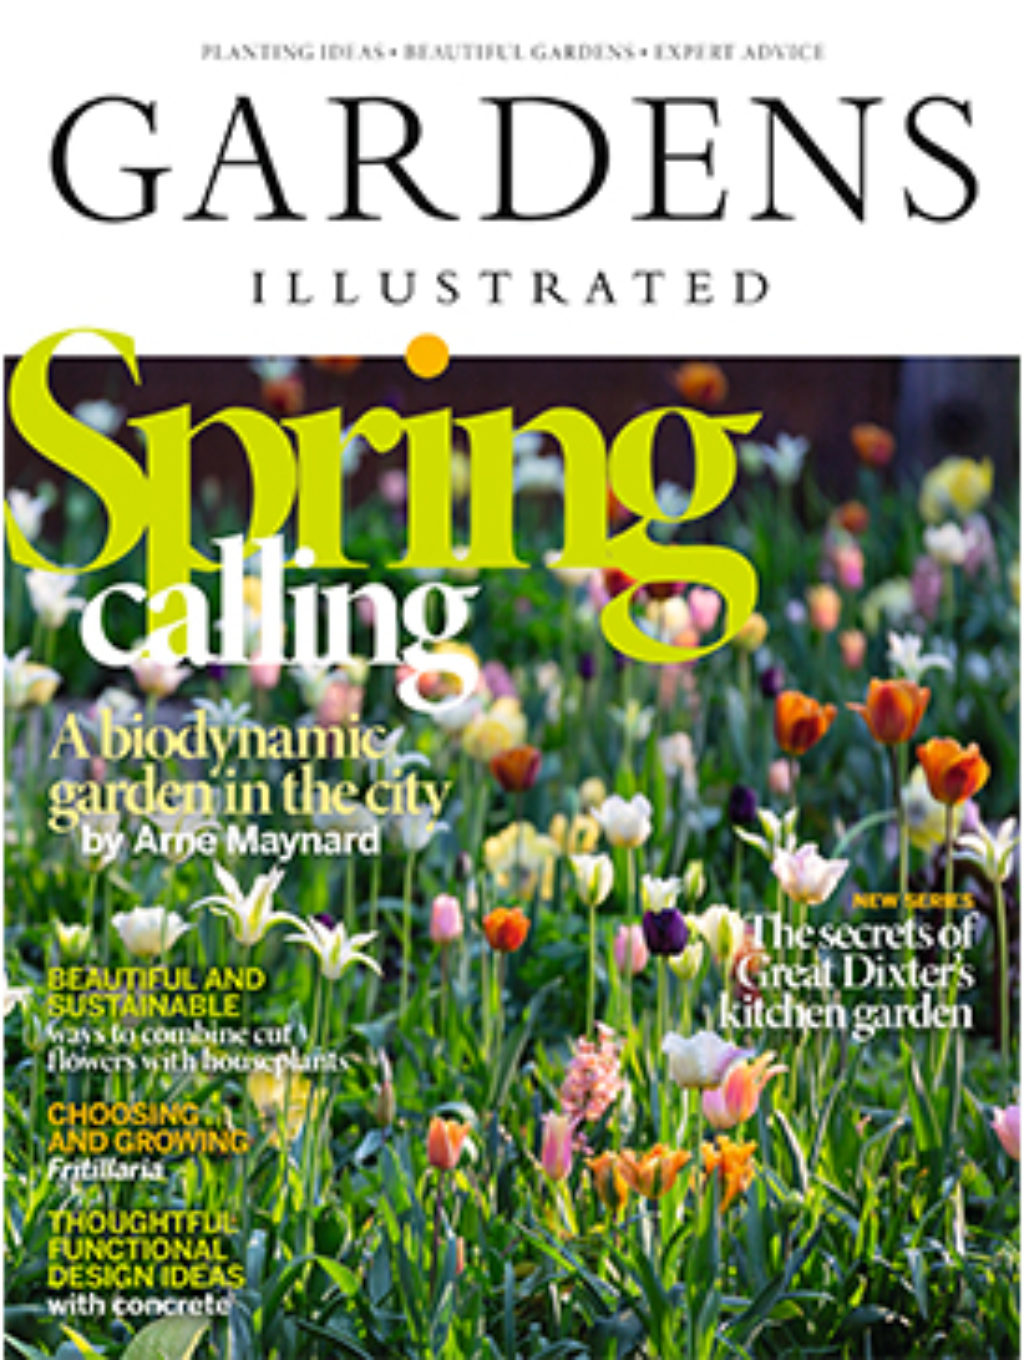 Gardens Illustrated April 2020 Cover